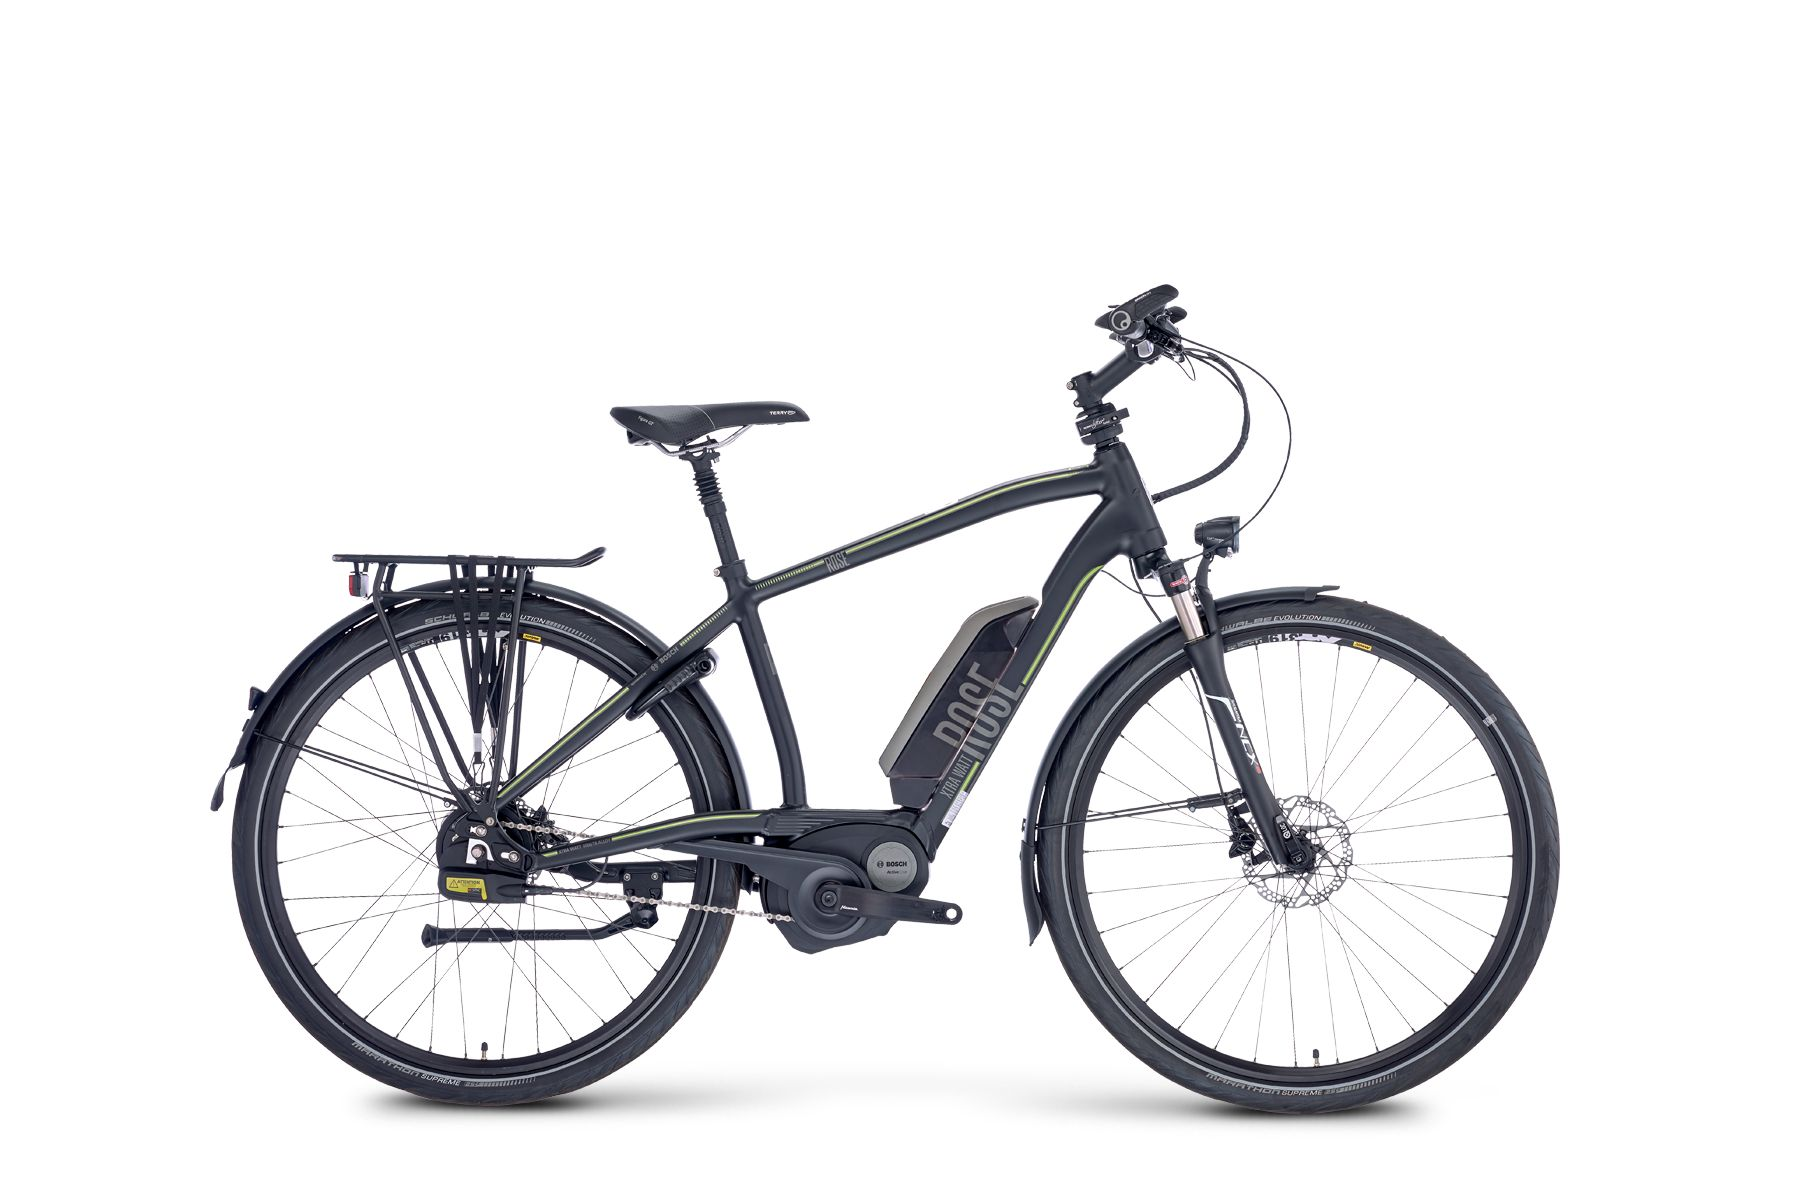 ROSE ROSE e-bike Xtra Watt 4 Men 400WH showroom bike | City